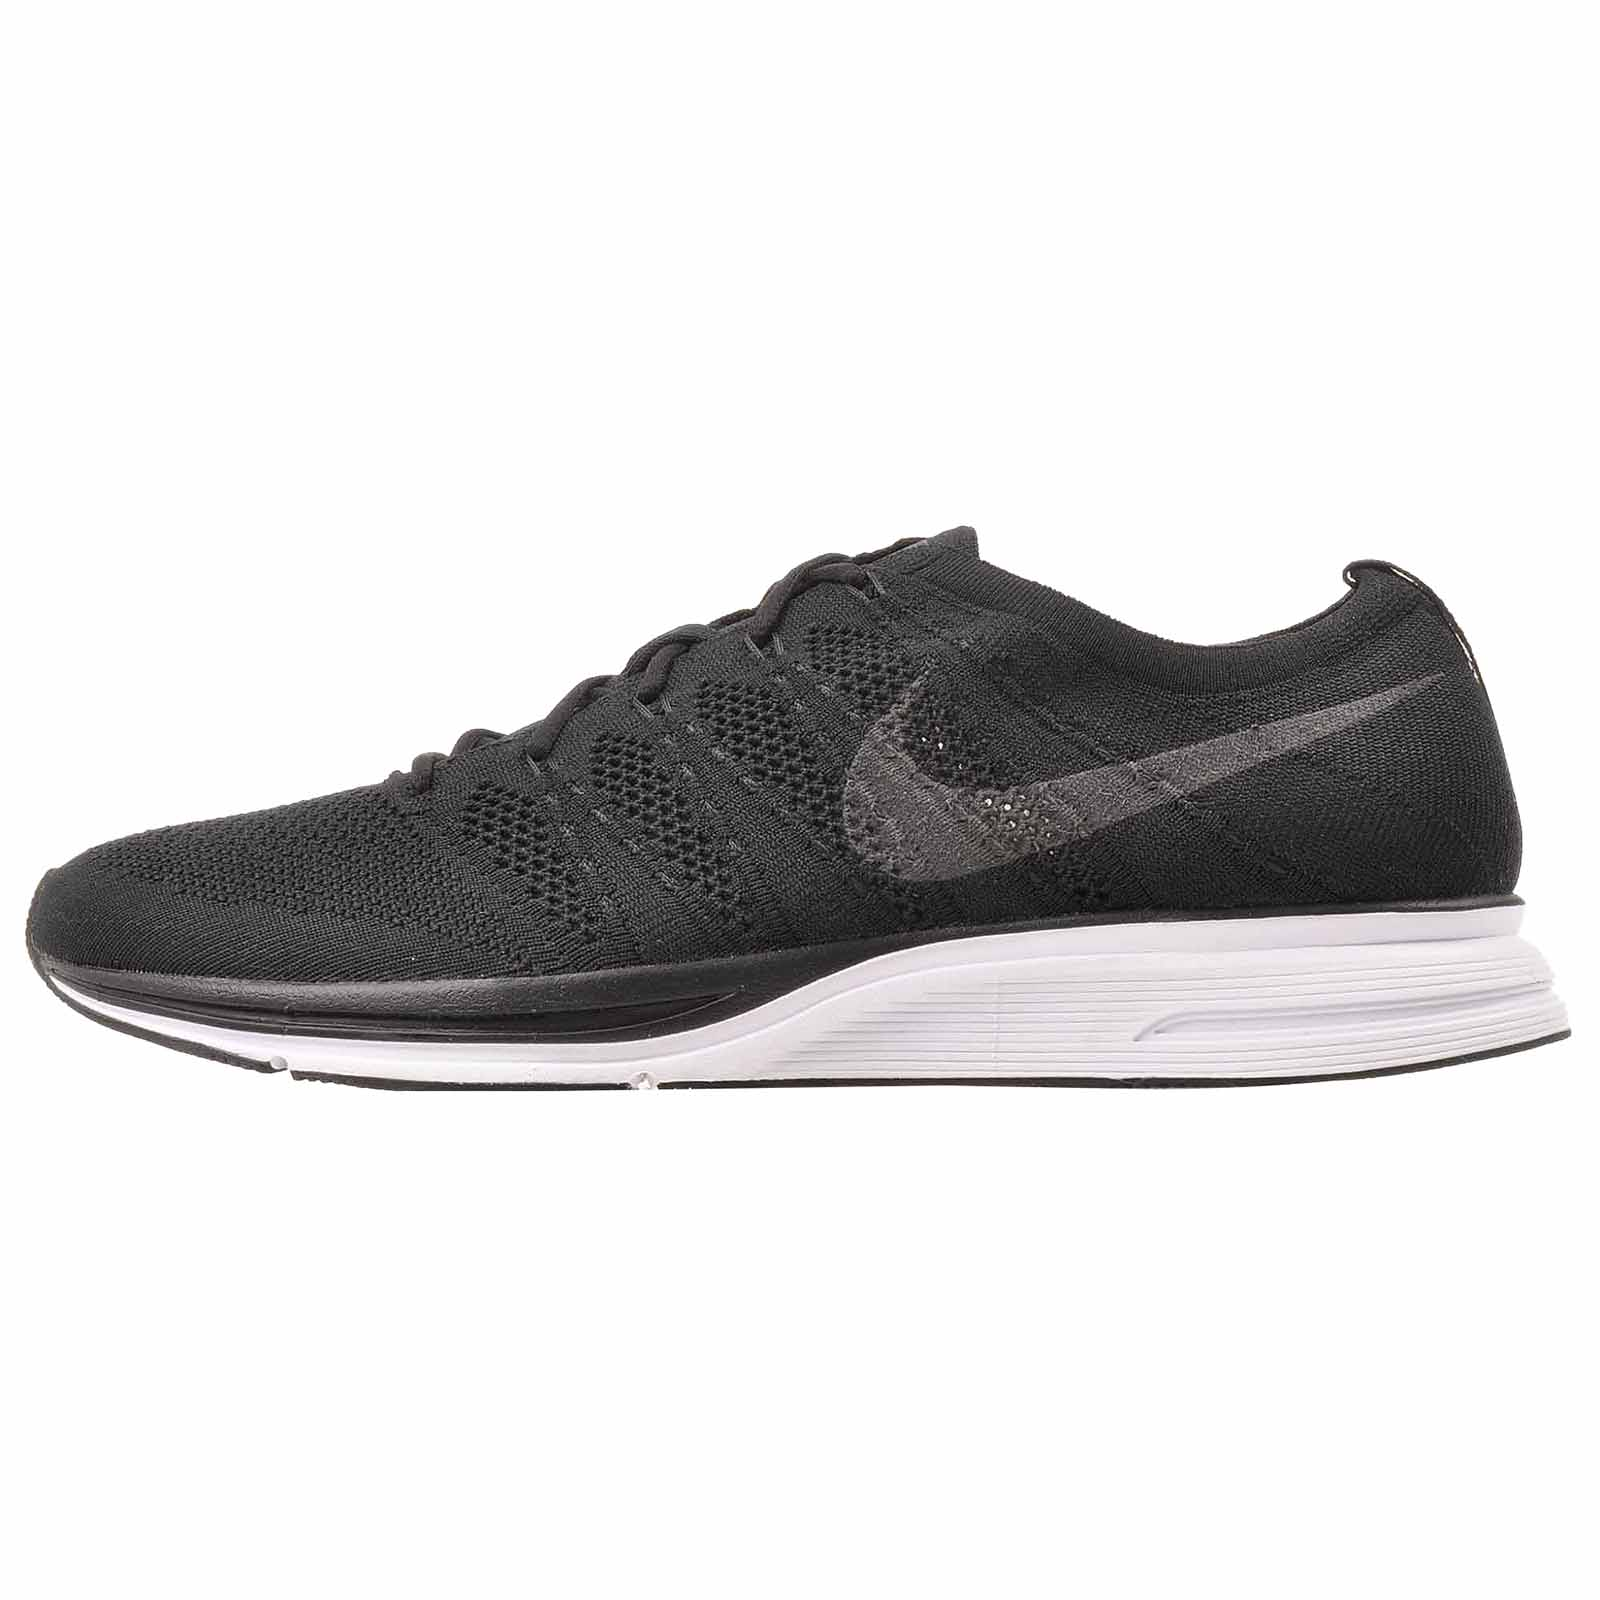 the best attitude 119e5 704ec Nike Flyknit Trainer Mens Cross Training Shoes Trainers Black White  AH8396-007